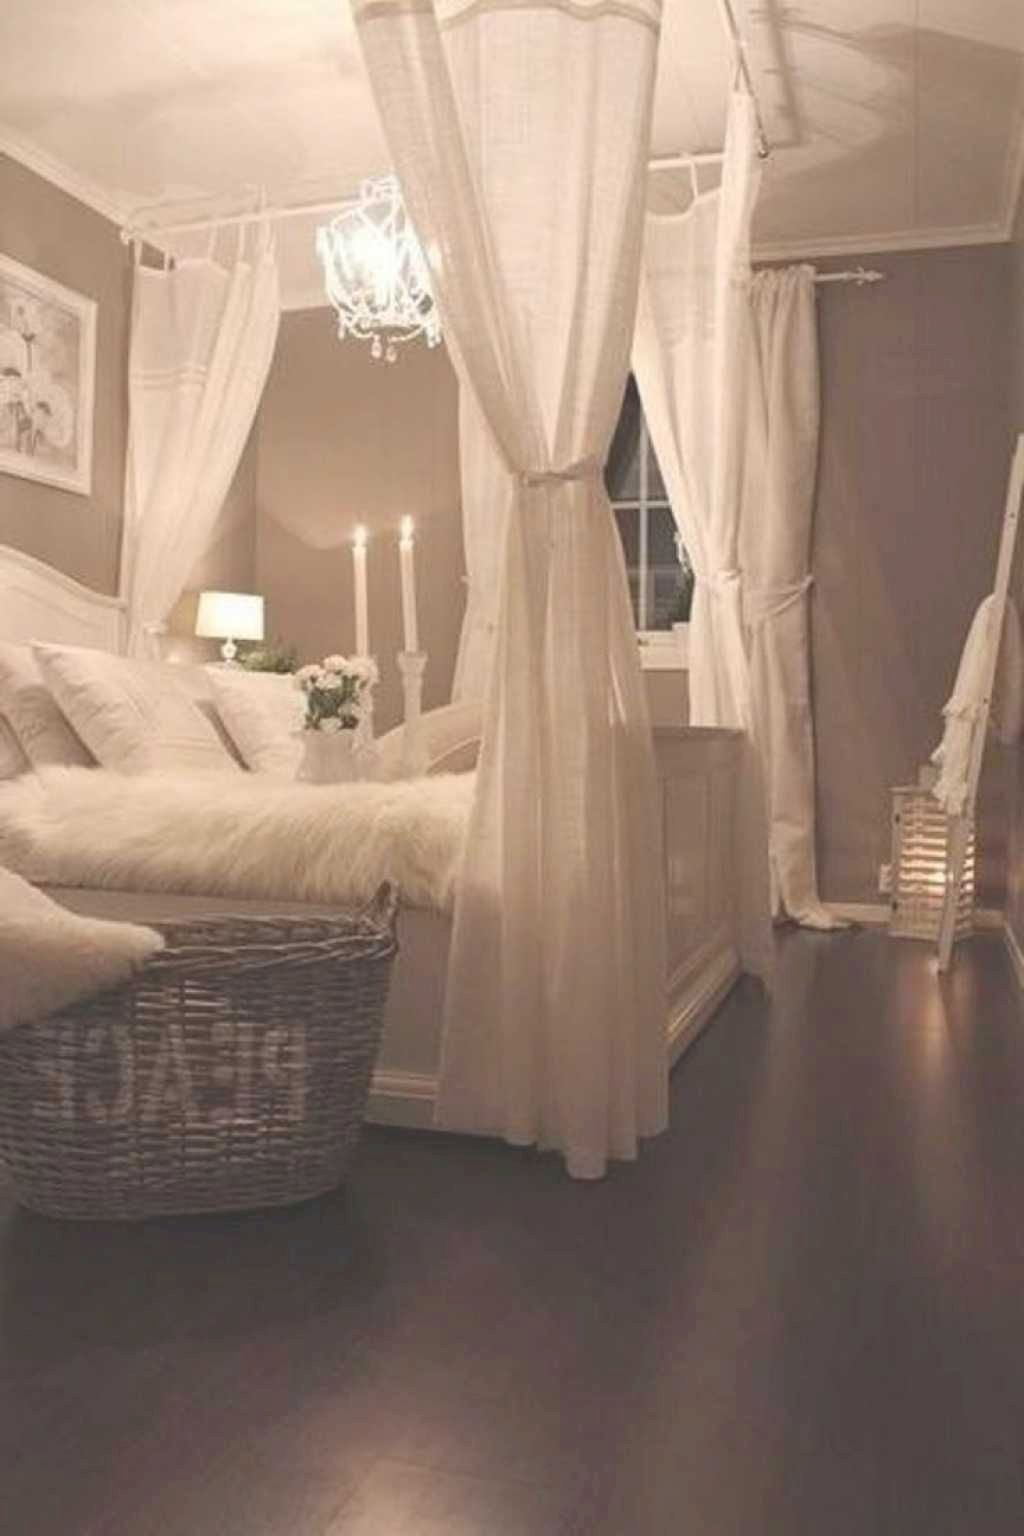 51 Comfy First Apartment Bedroom Ideas 51